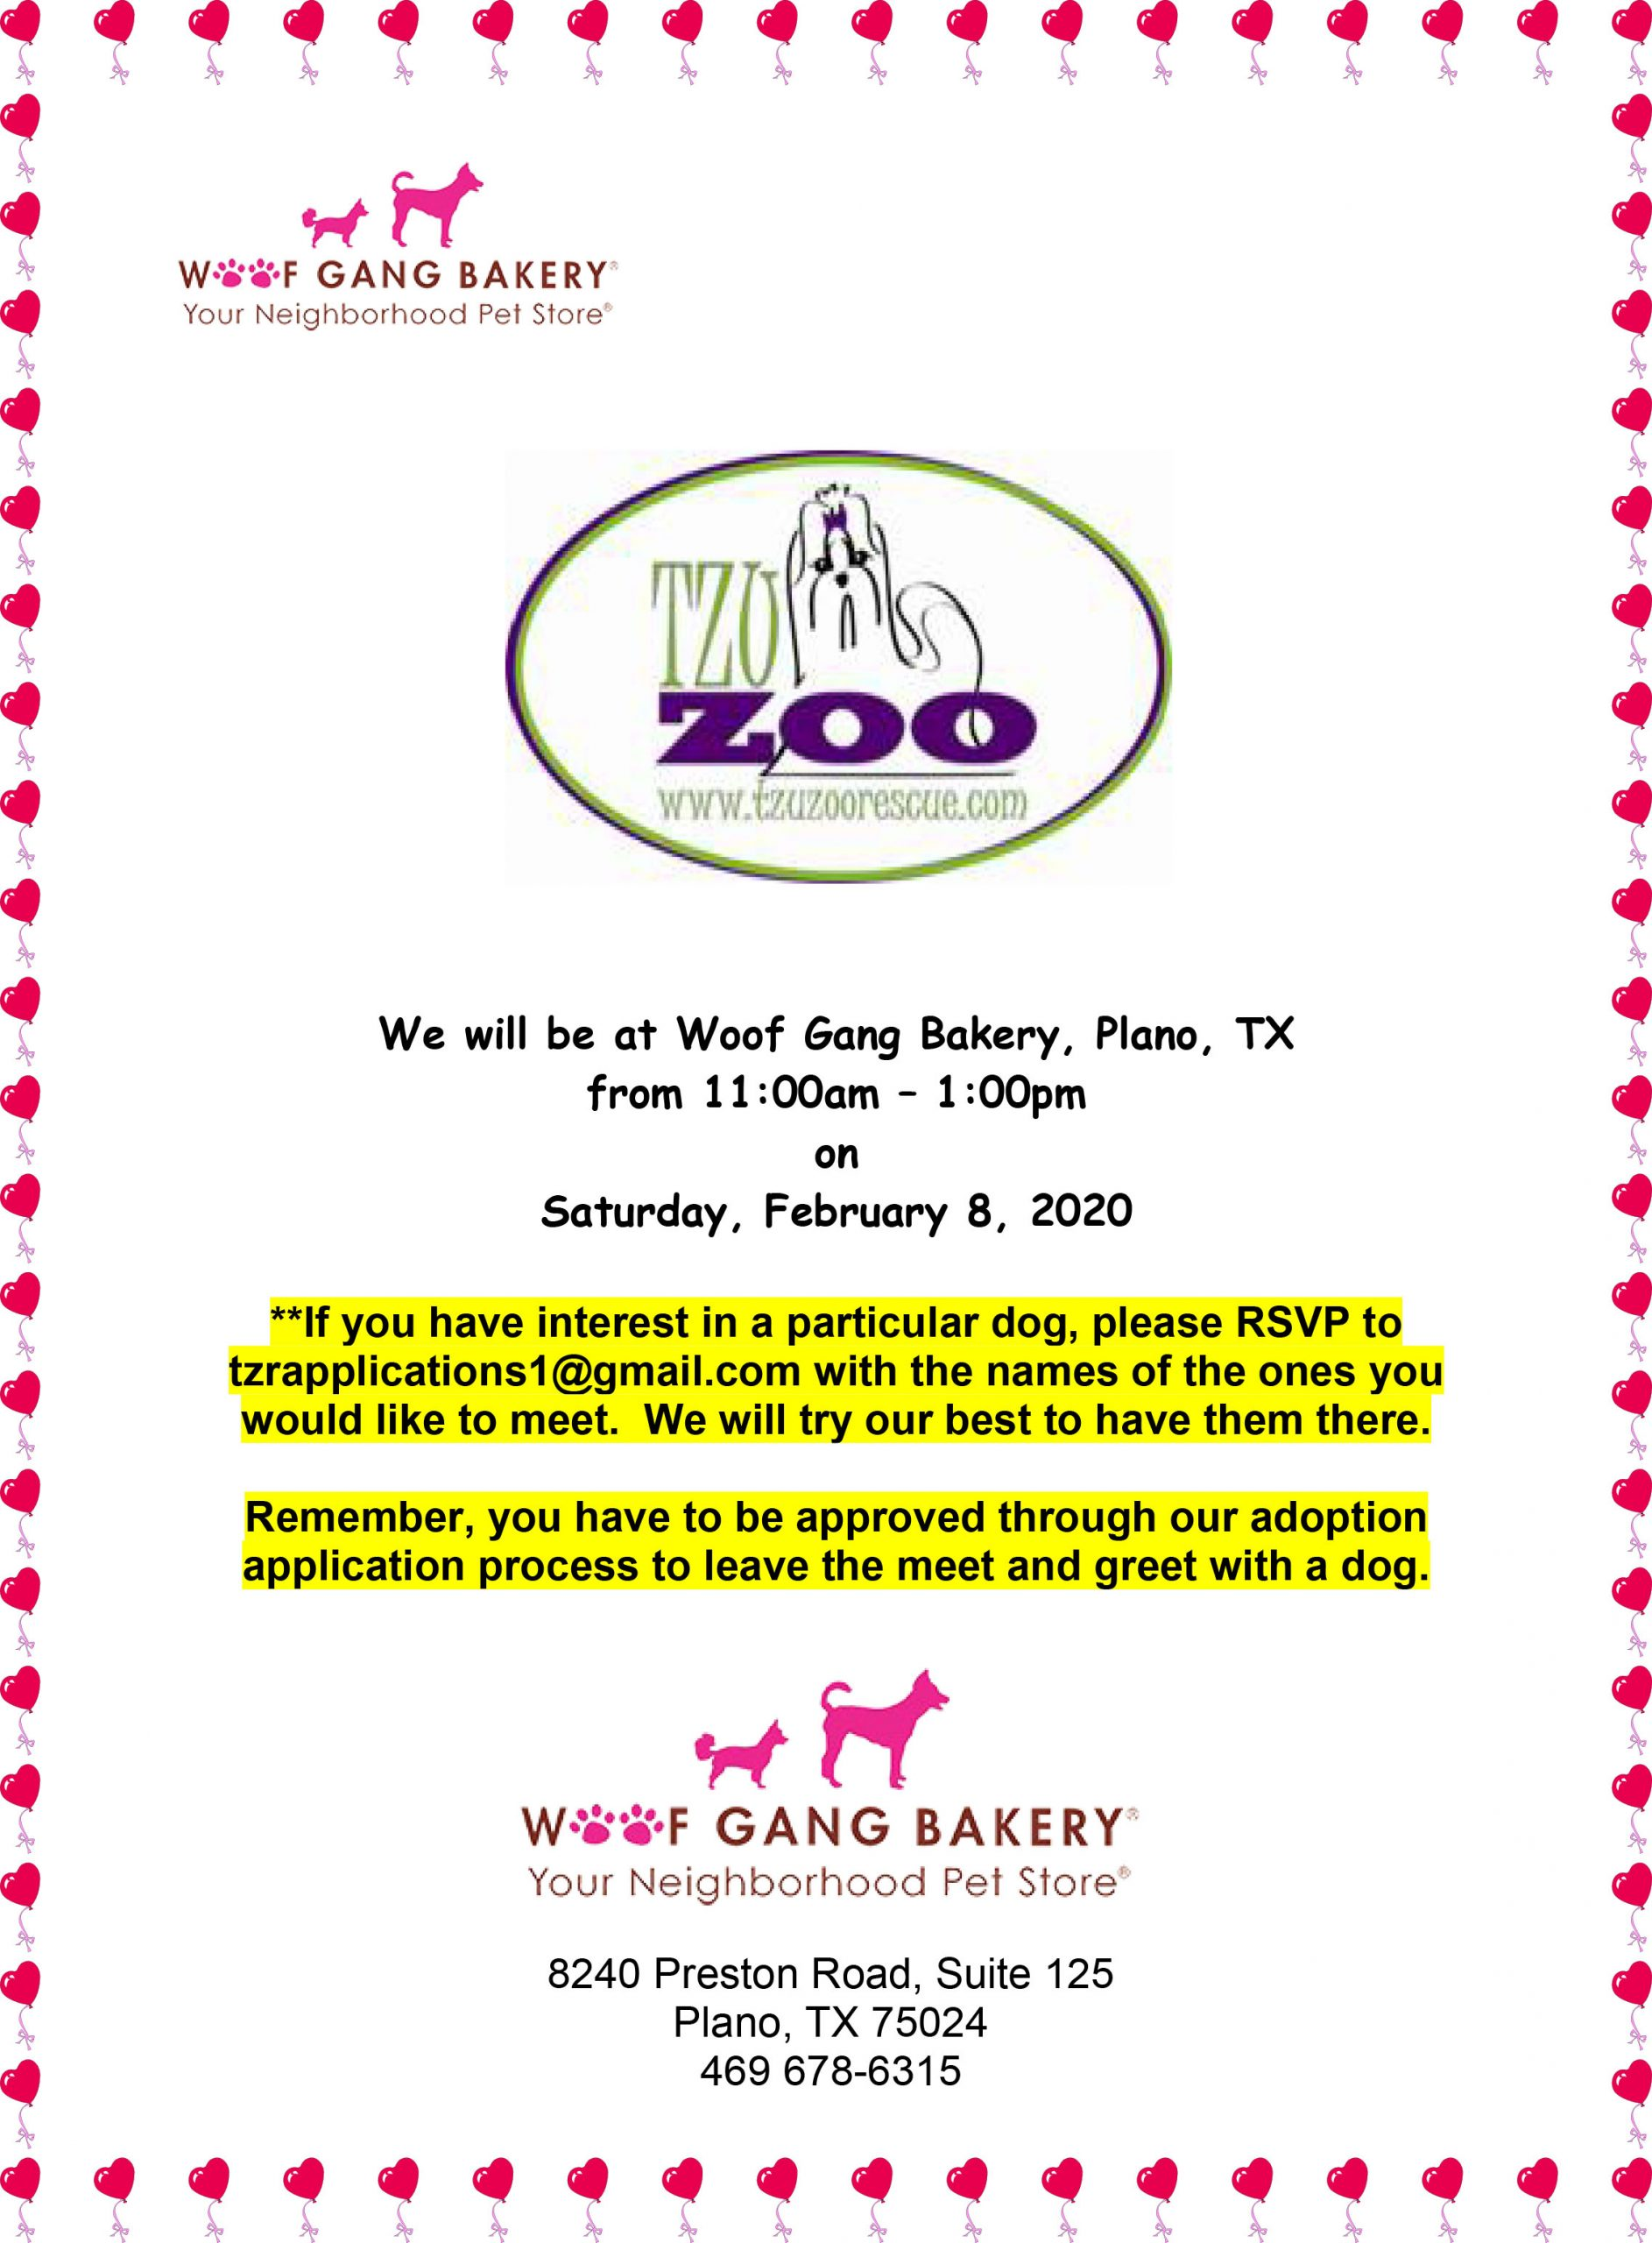 Meet & Greet, Woof Gang Bakery-Plano, TX